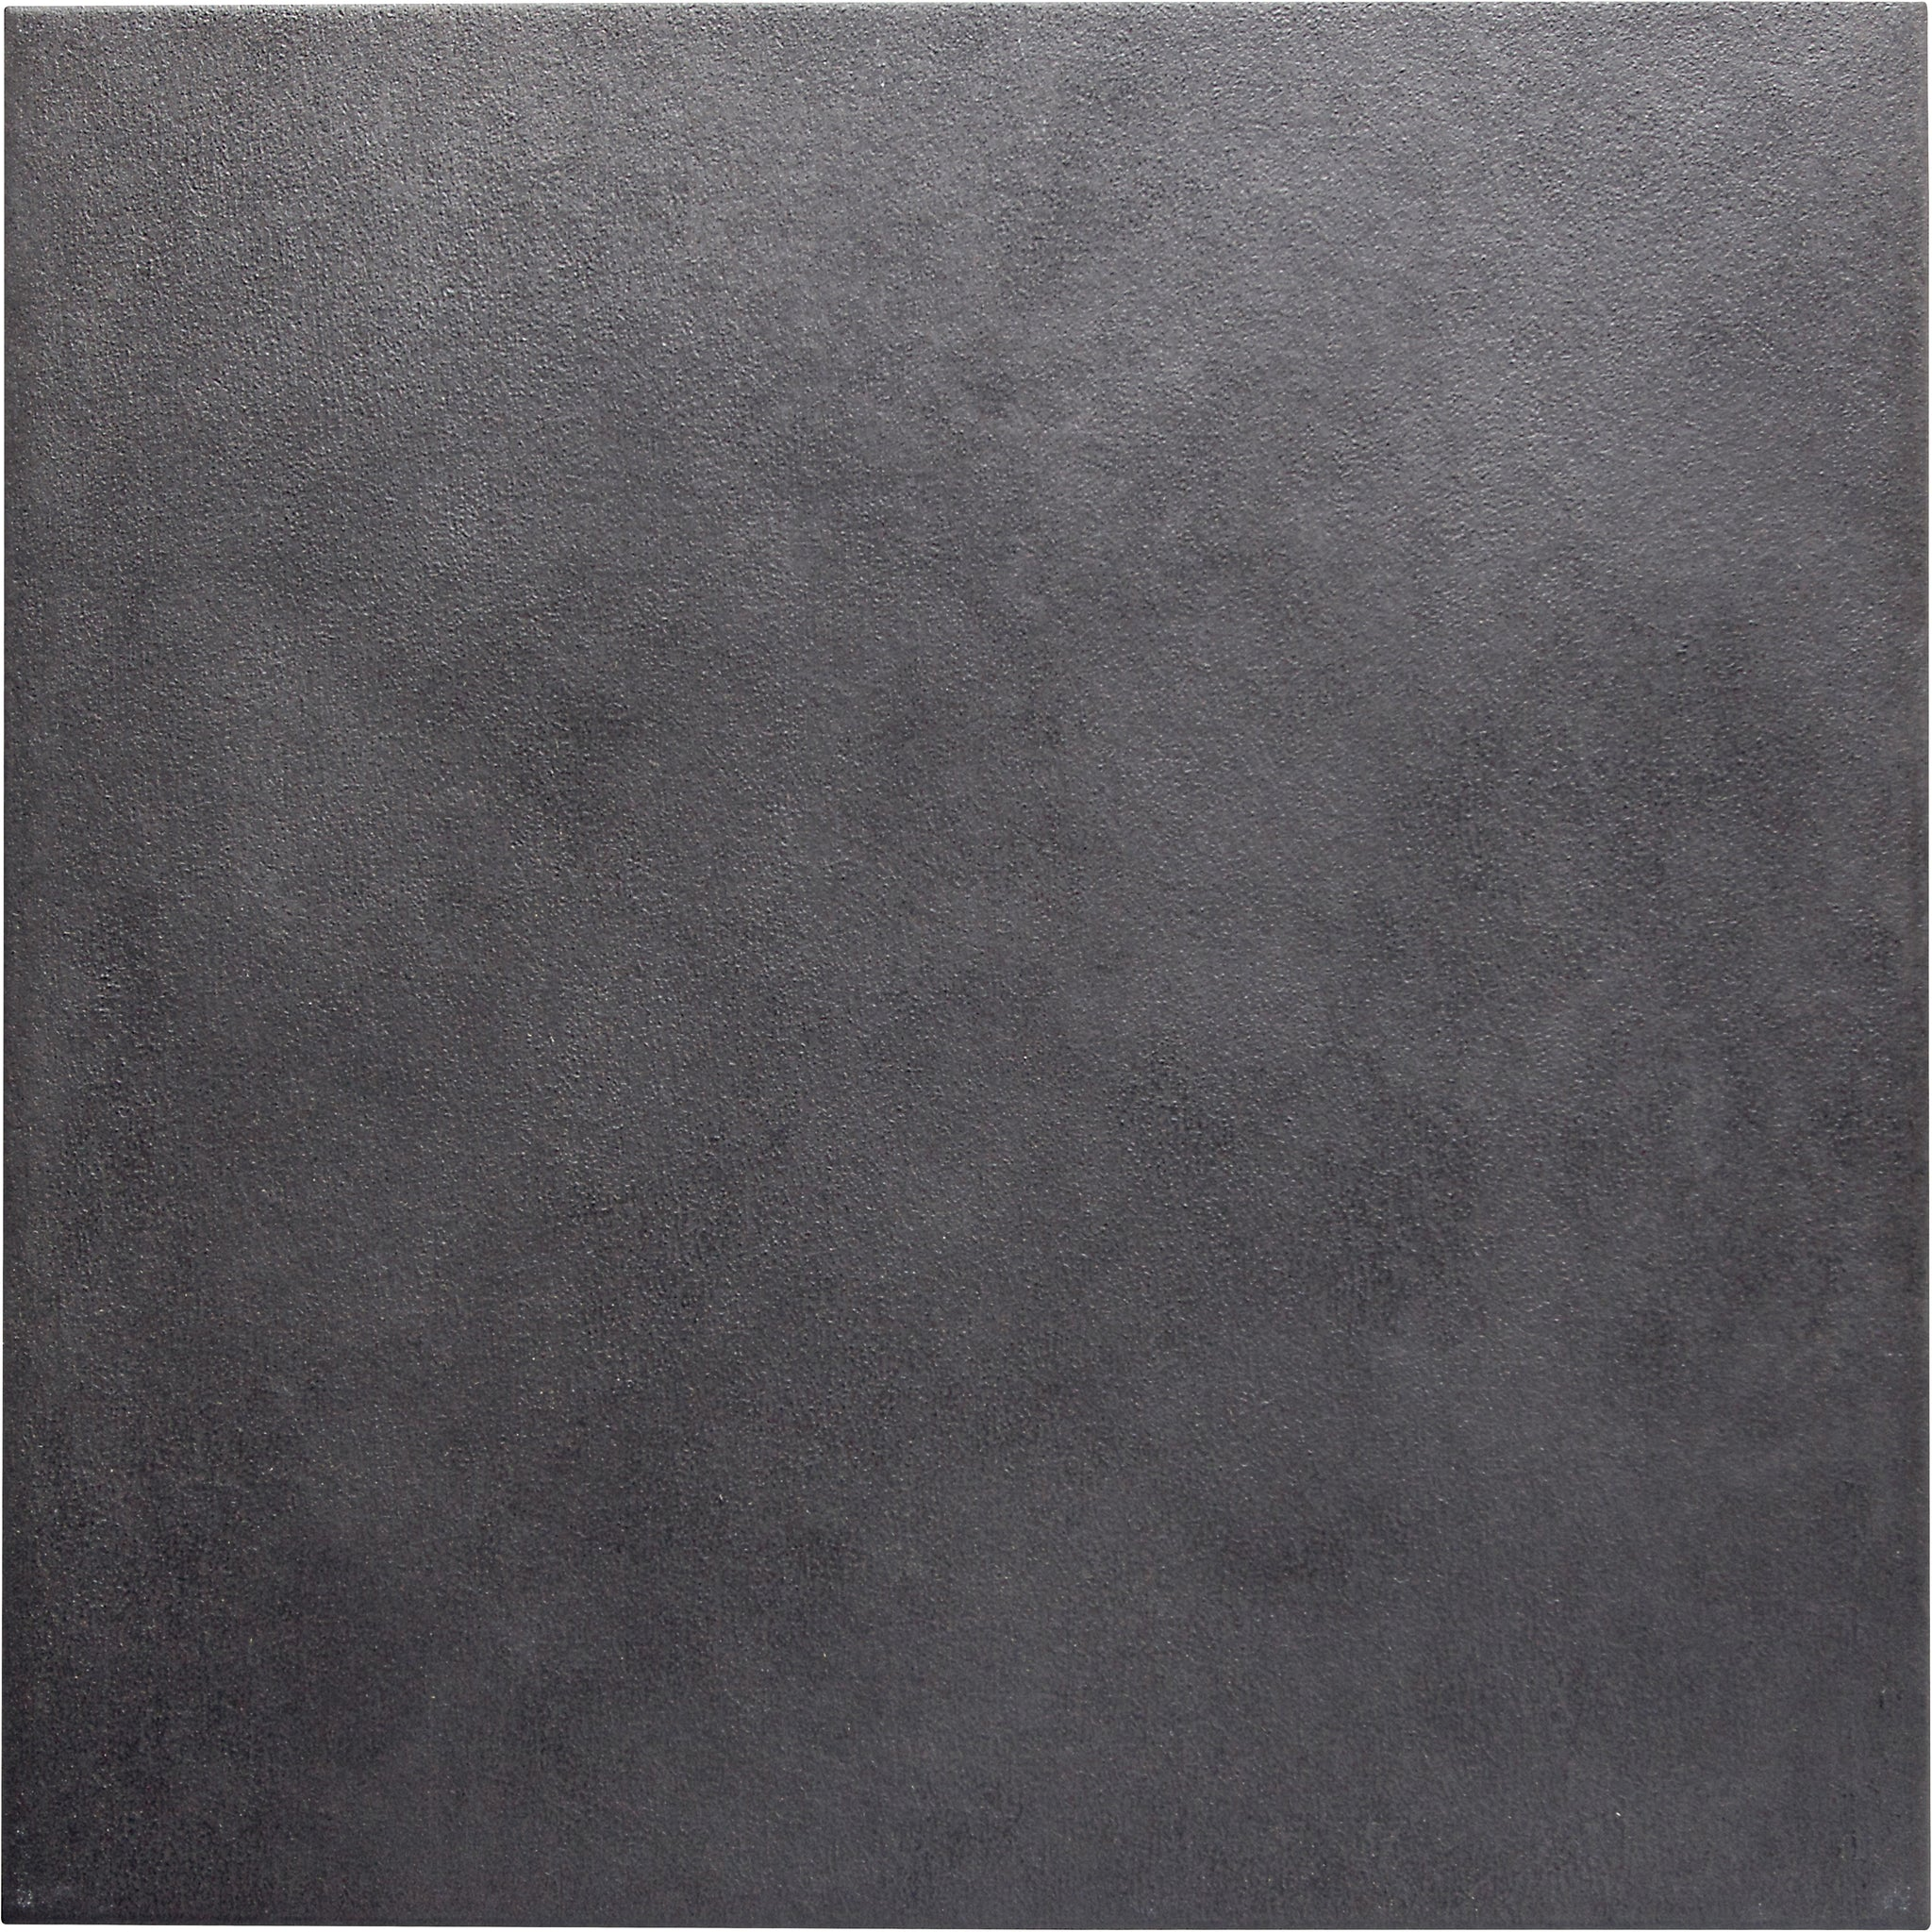 Ambient Series GT06323 Vitrified Tile 475x475mm